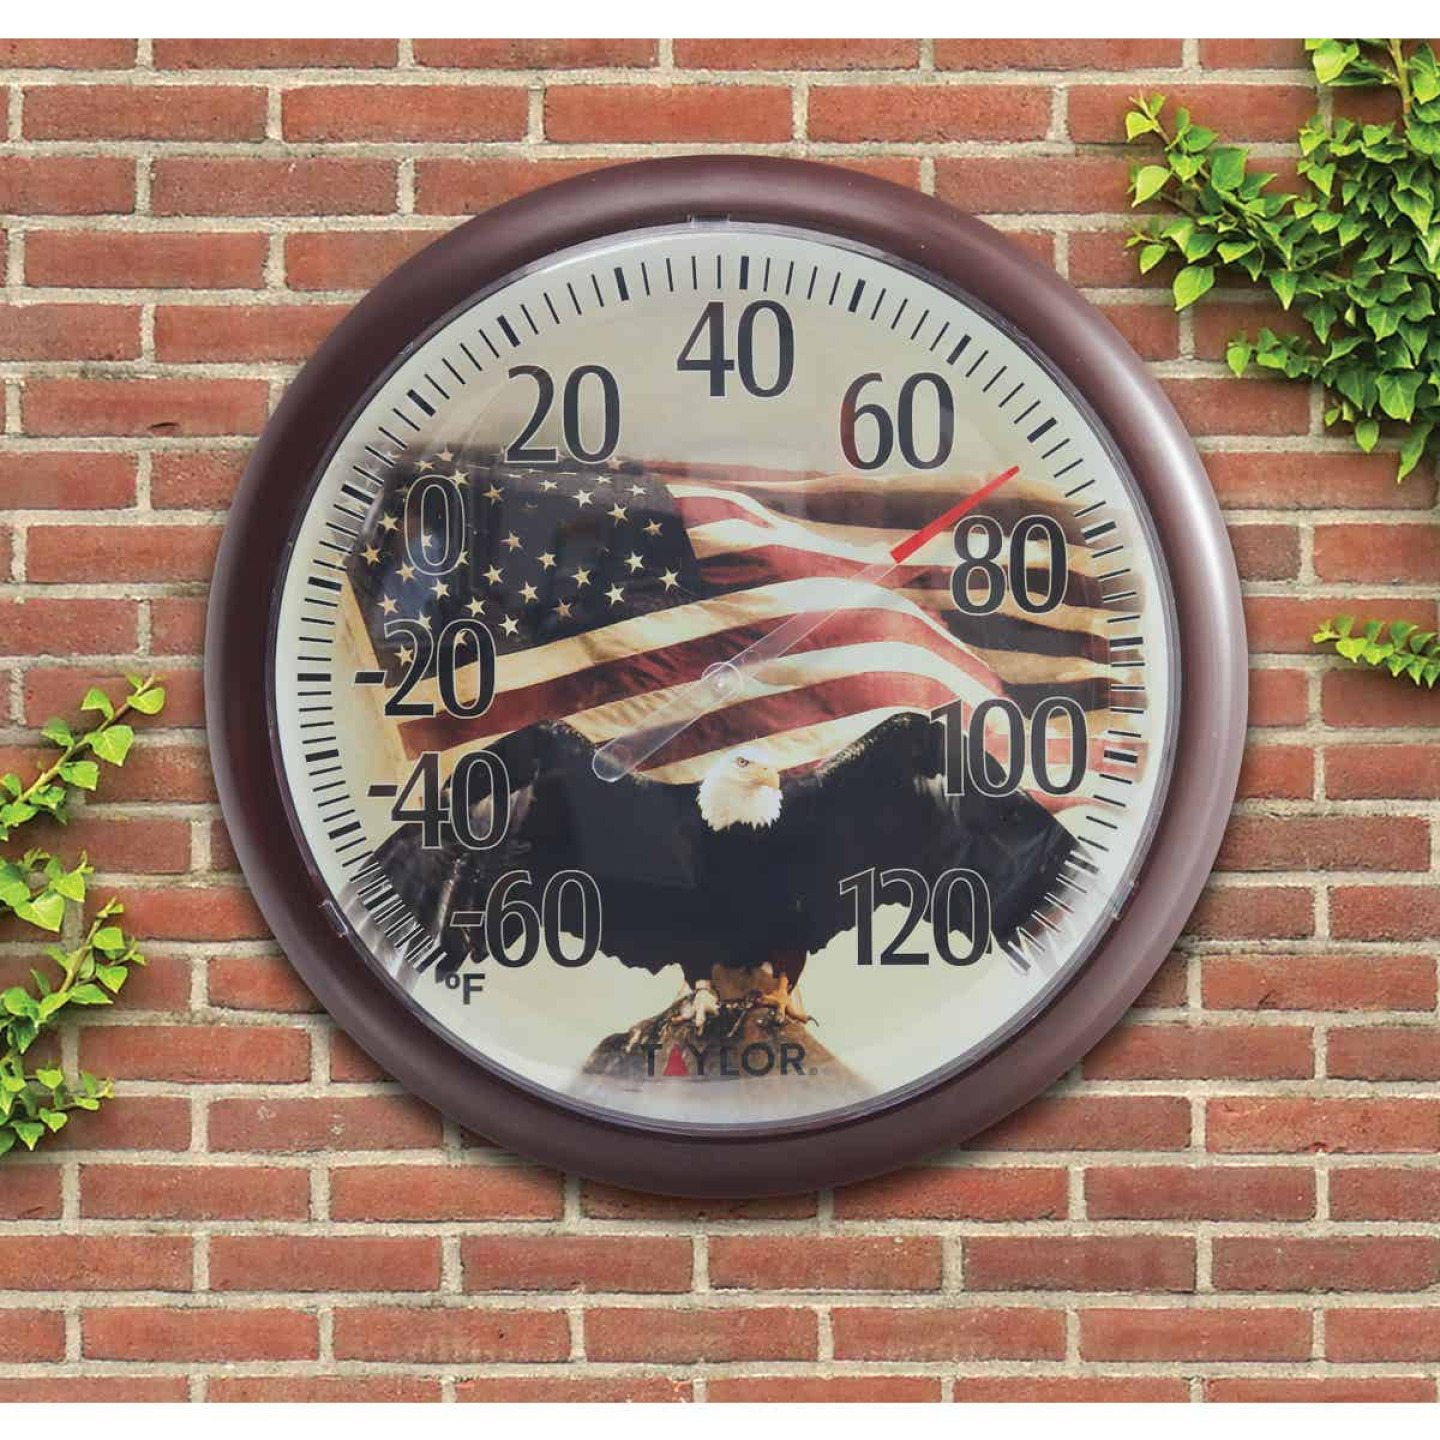 "Taylor SpringField 13-1/4"" Dia Plastic Dial Flag Indoor & Outdoor Thermometer Image 2"